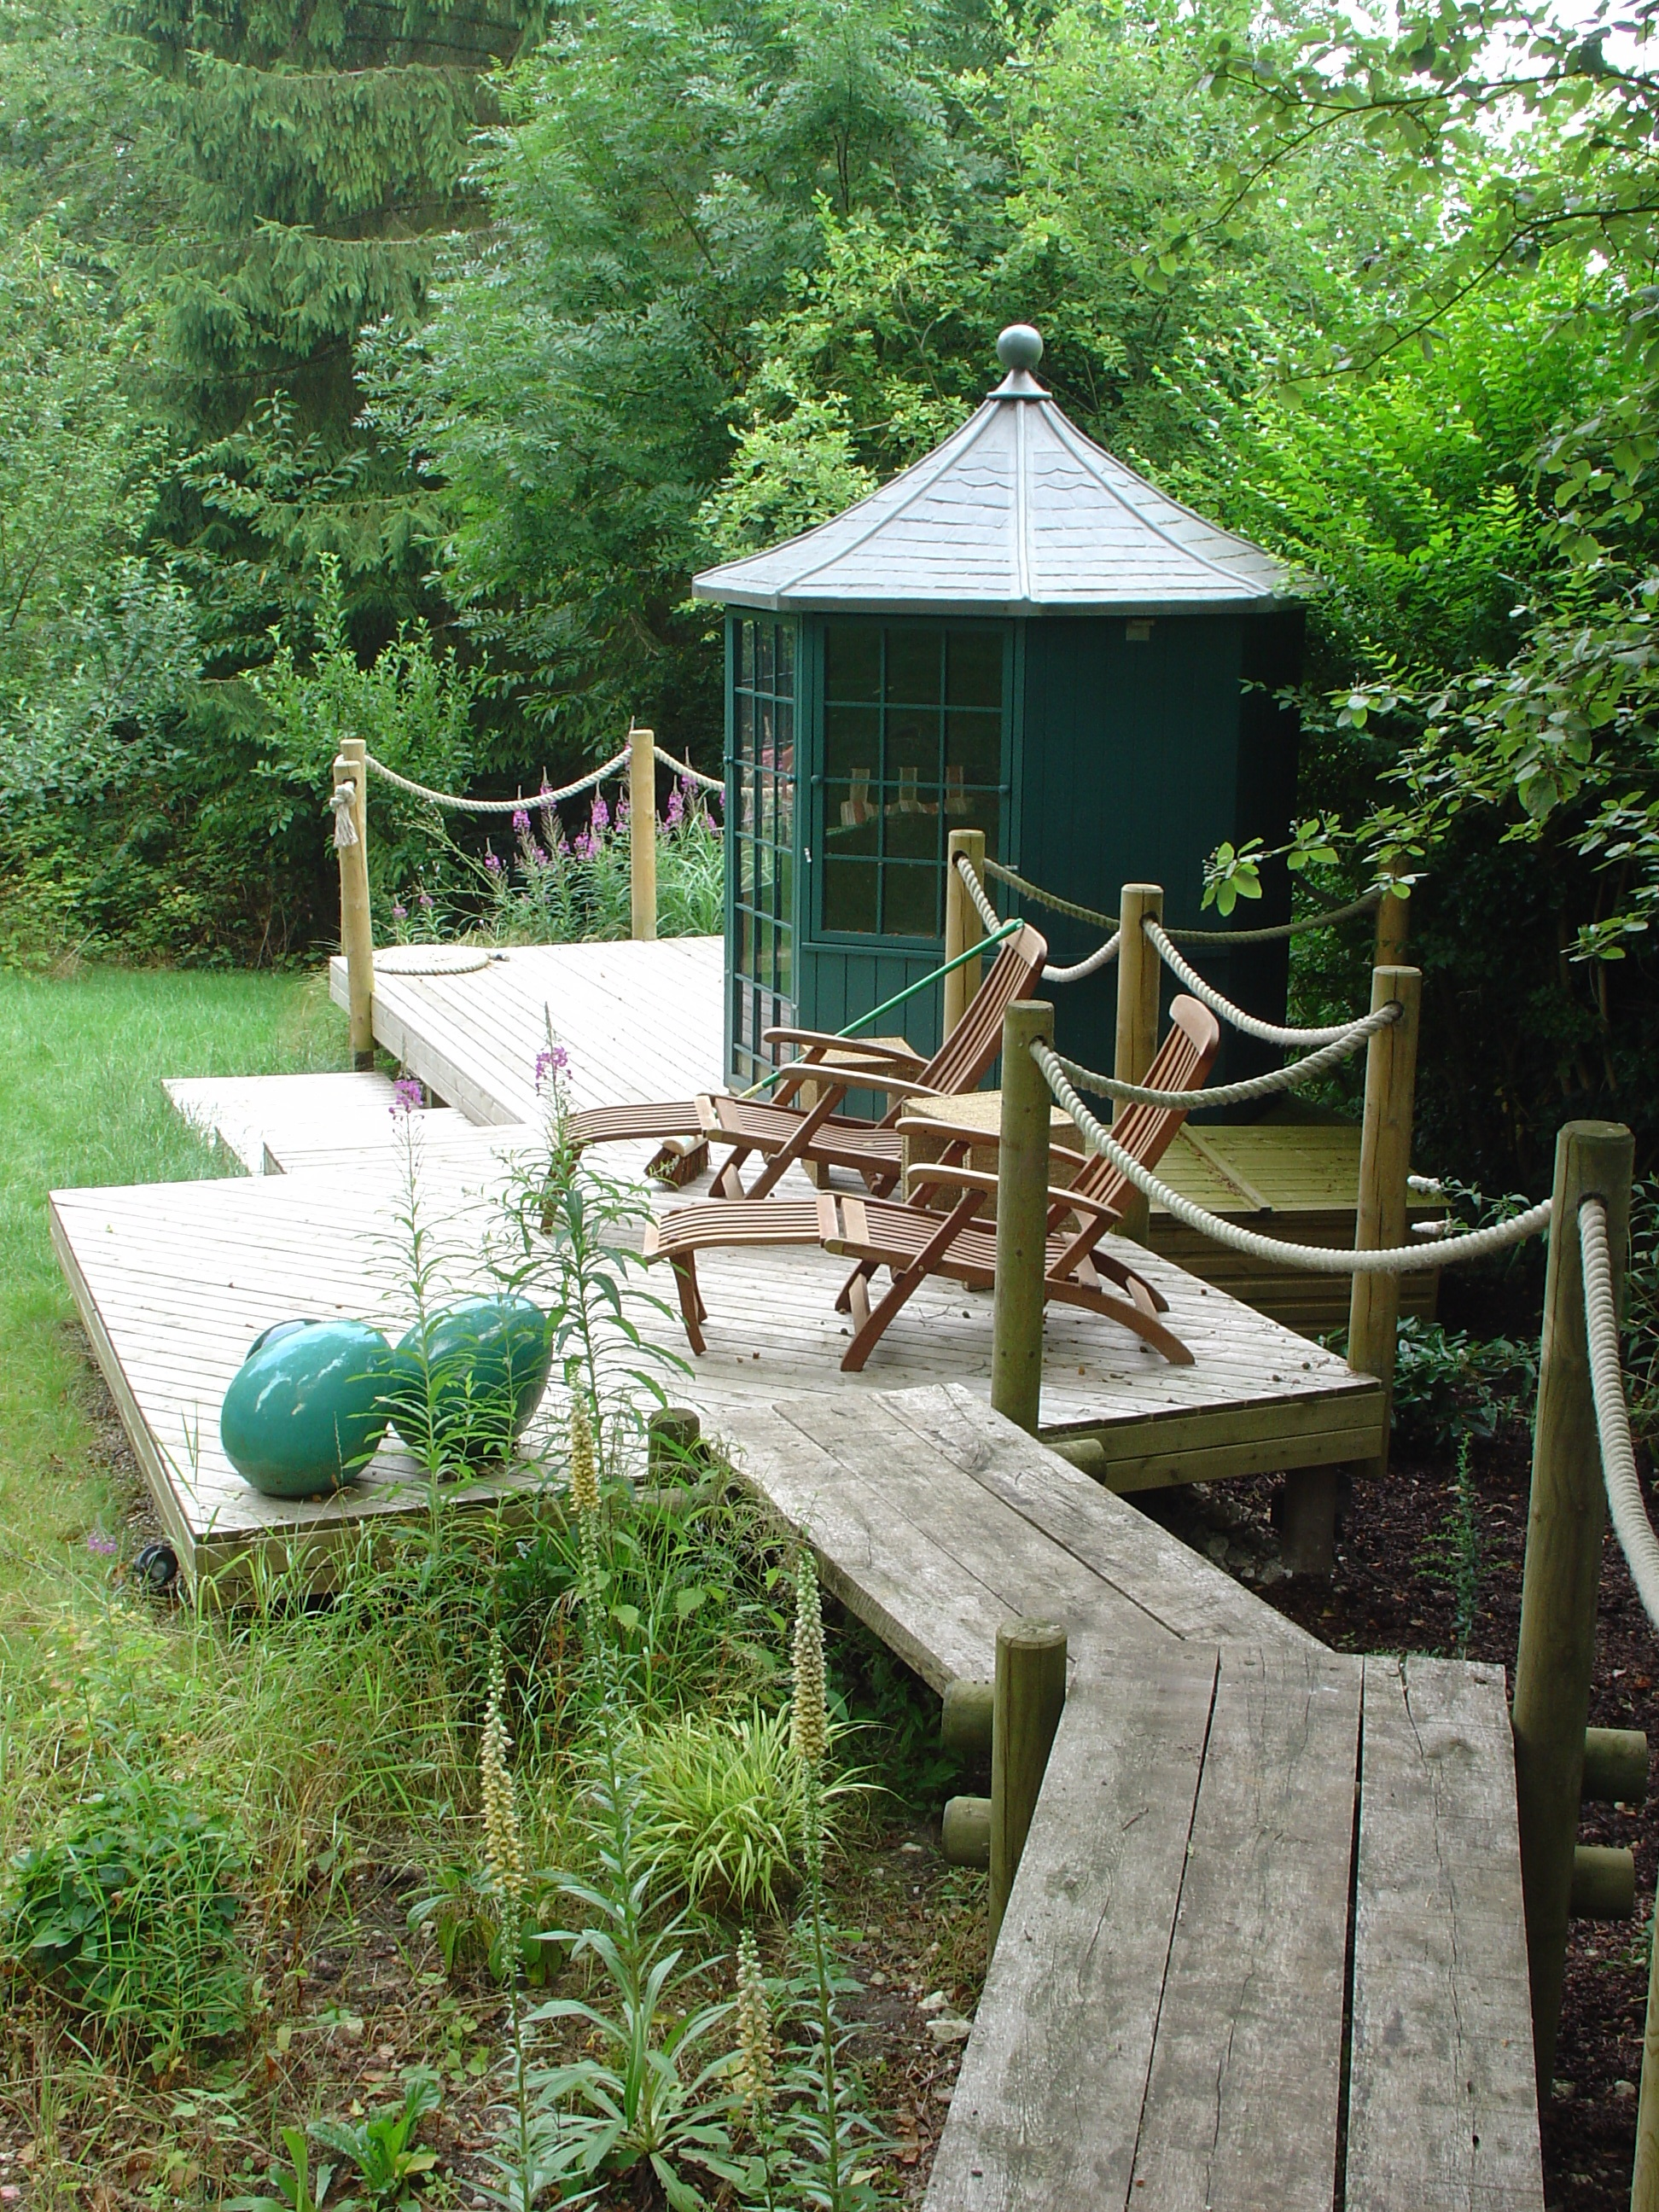 Woodland summerhouse